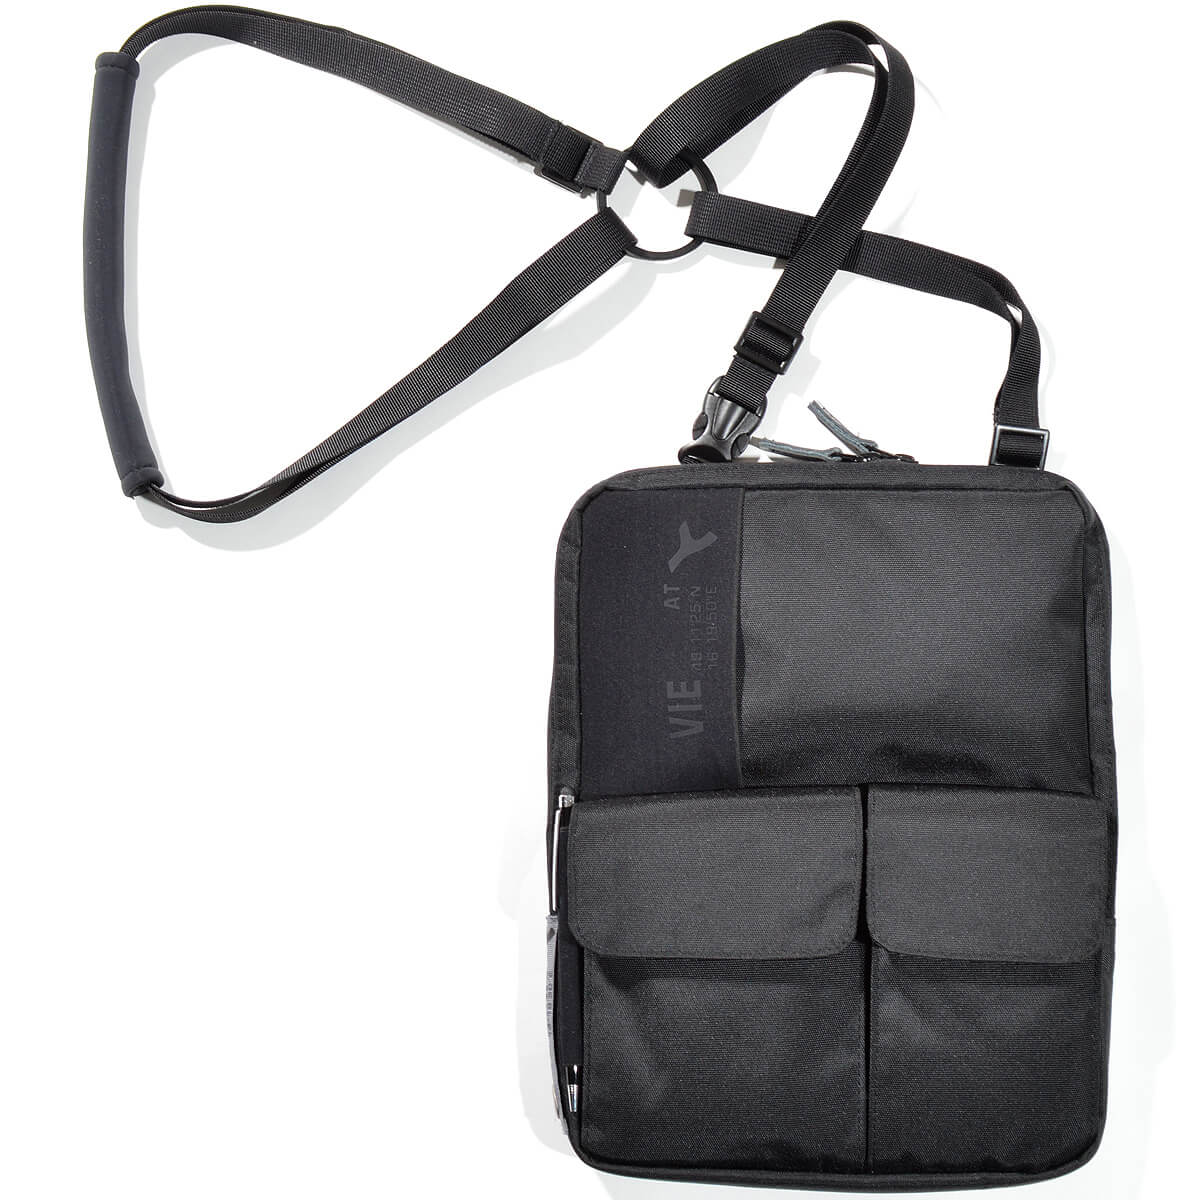 3 In 1 Tablet Bag For Tablets And Ipads Up To 12 Tabletharness